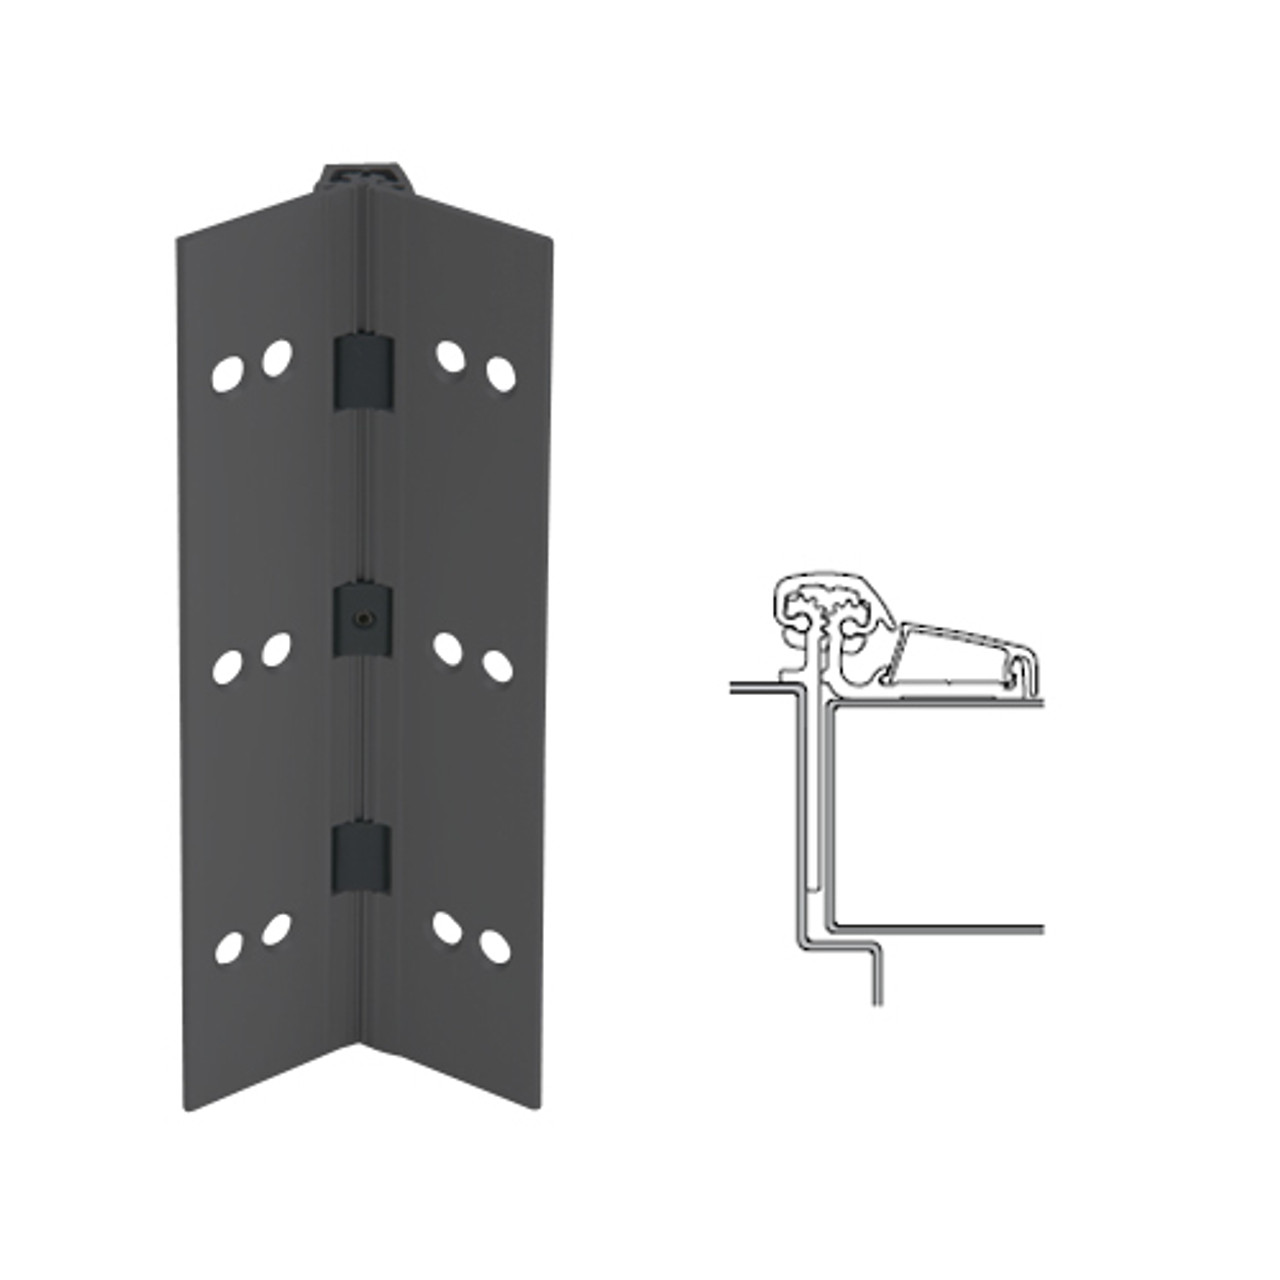 053XY-315AN-120-TF IVES Adjustable Half Surface Continuous Geared Hinges with Thread Forming Screws in Anodized Black